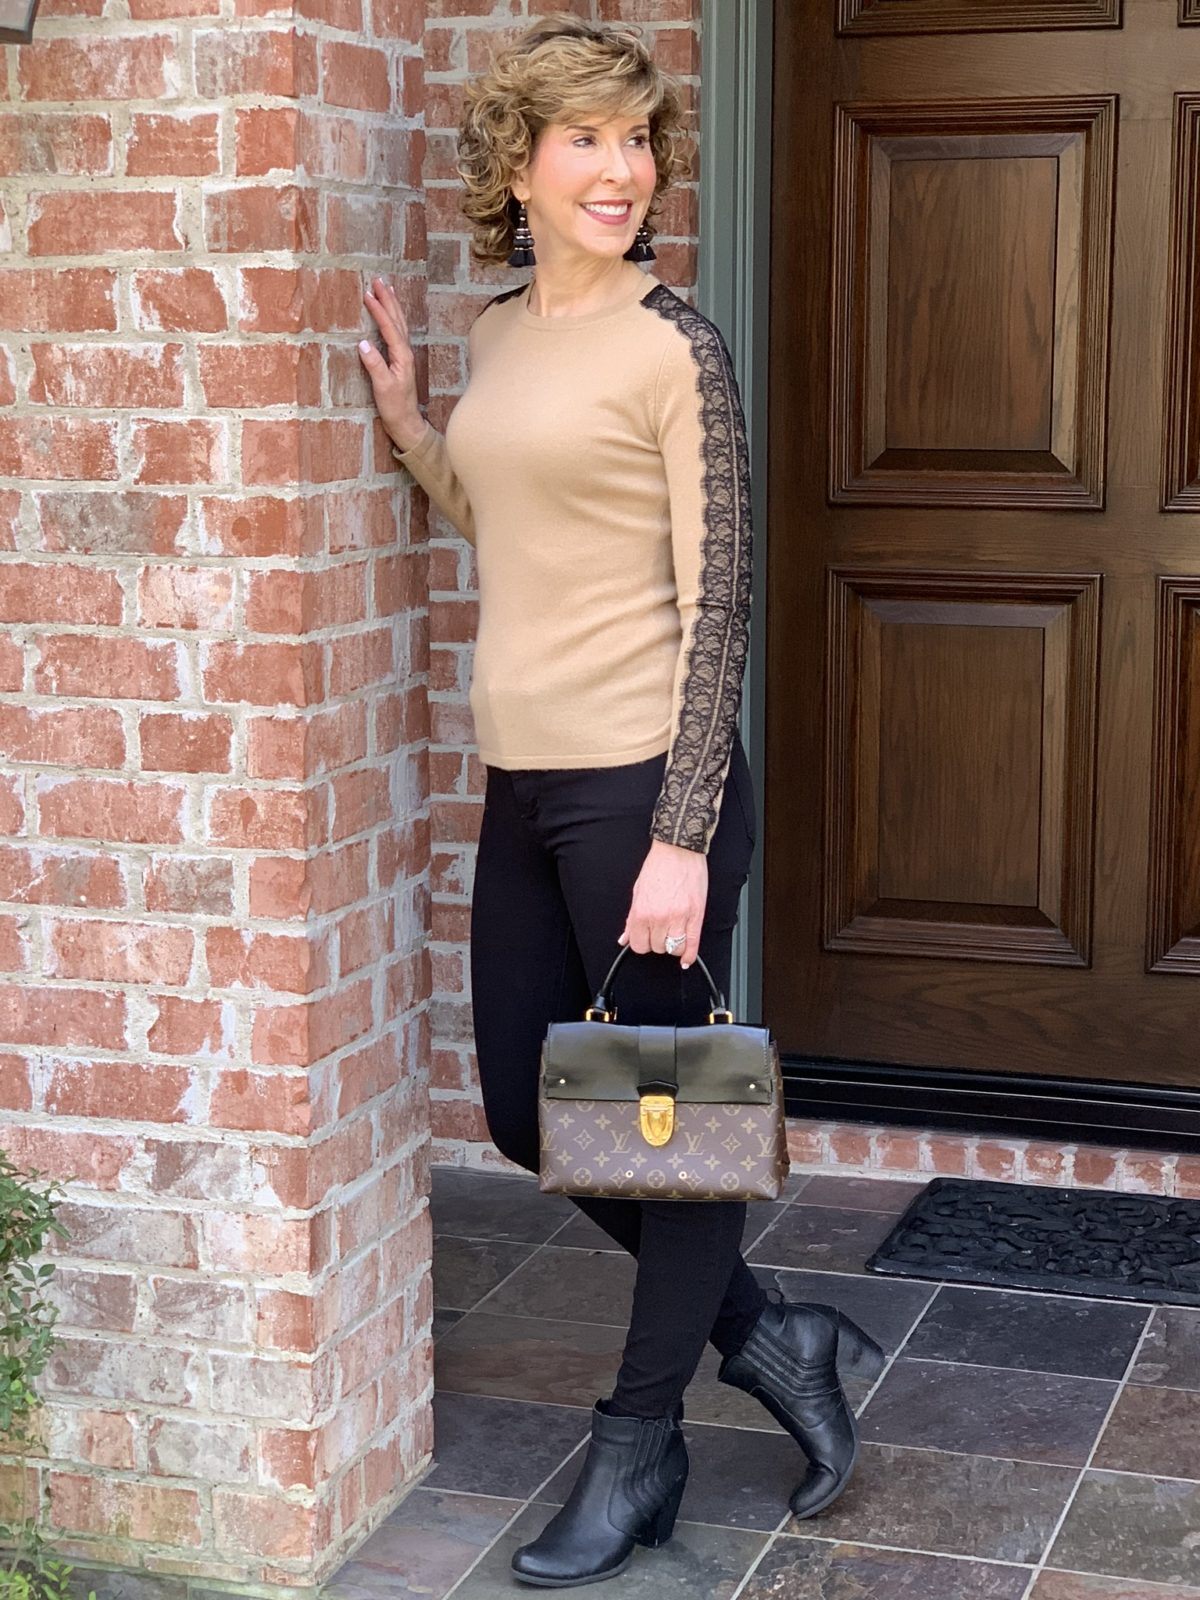 woman in tan with black accent sweater leaning against doorway